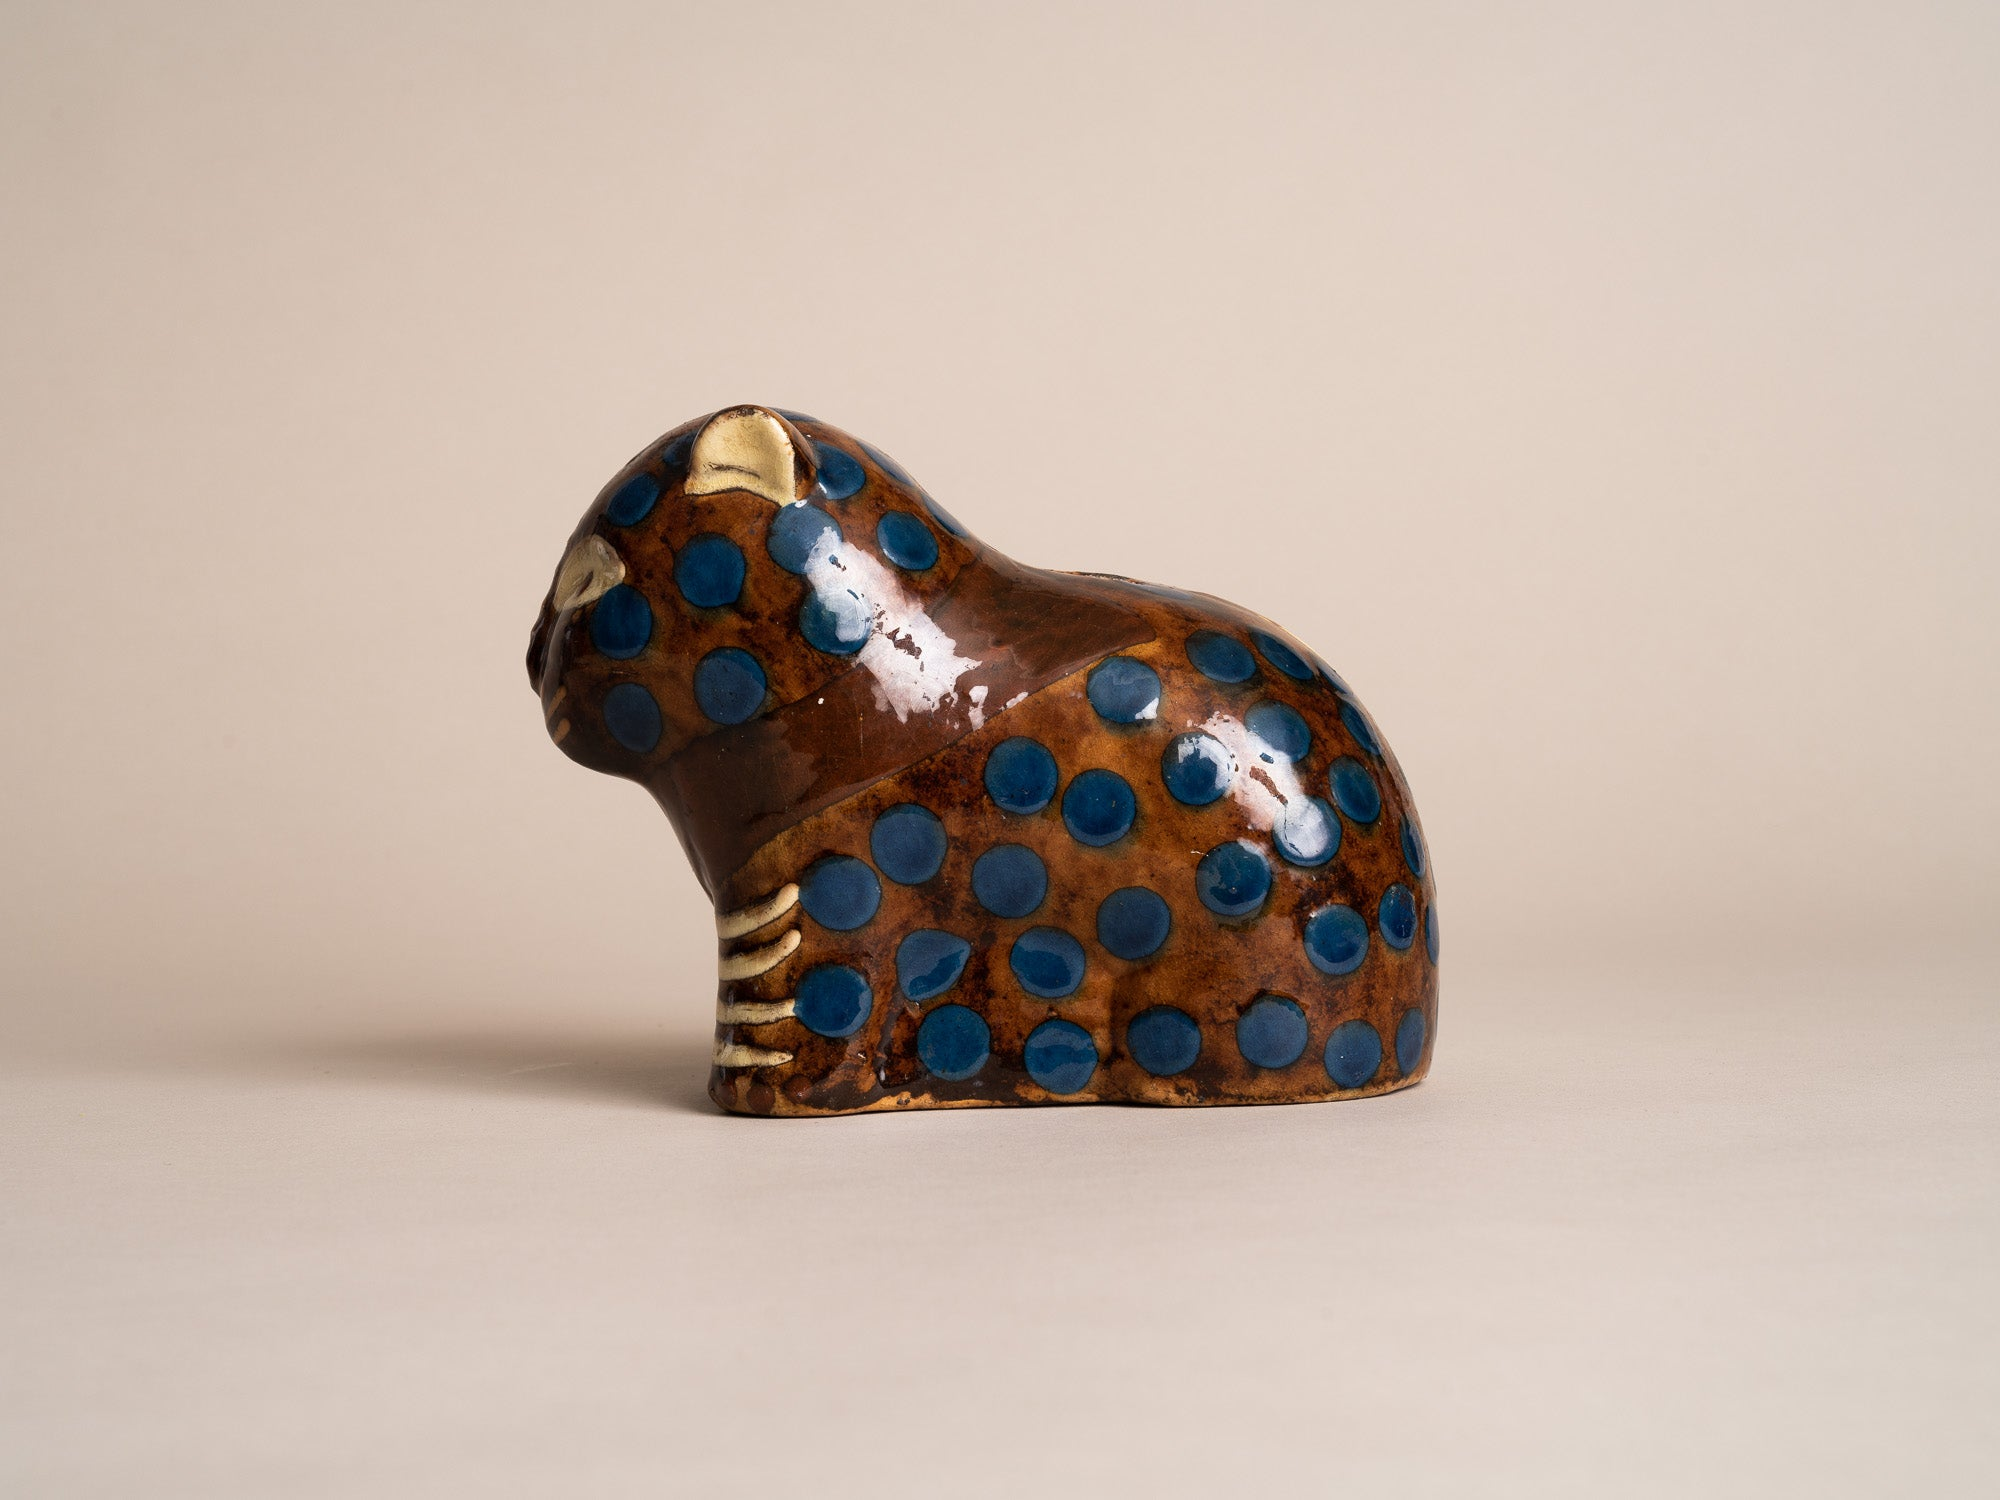 Rare sculpture Chat, tirelire en terre vernissée de Soufflenheim par Elchinger pour Primavera, France (vers 1925)..Rare Primavera Art Deco Cat sculpture, slipware Piggy bank, by Léon Elchinger in Soufflenheim, France (circa 1925)